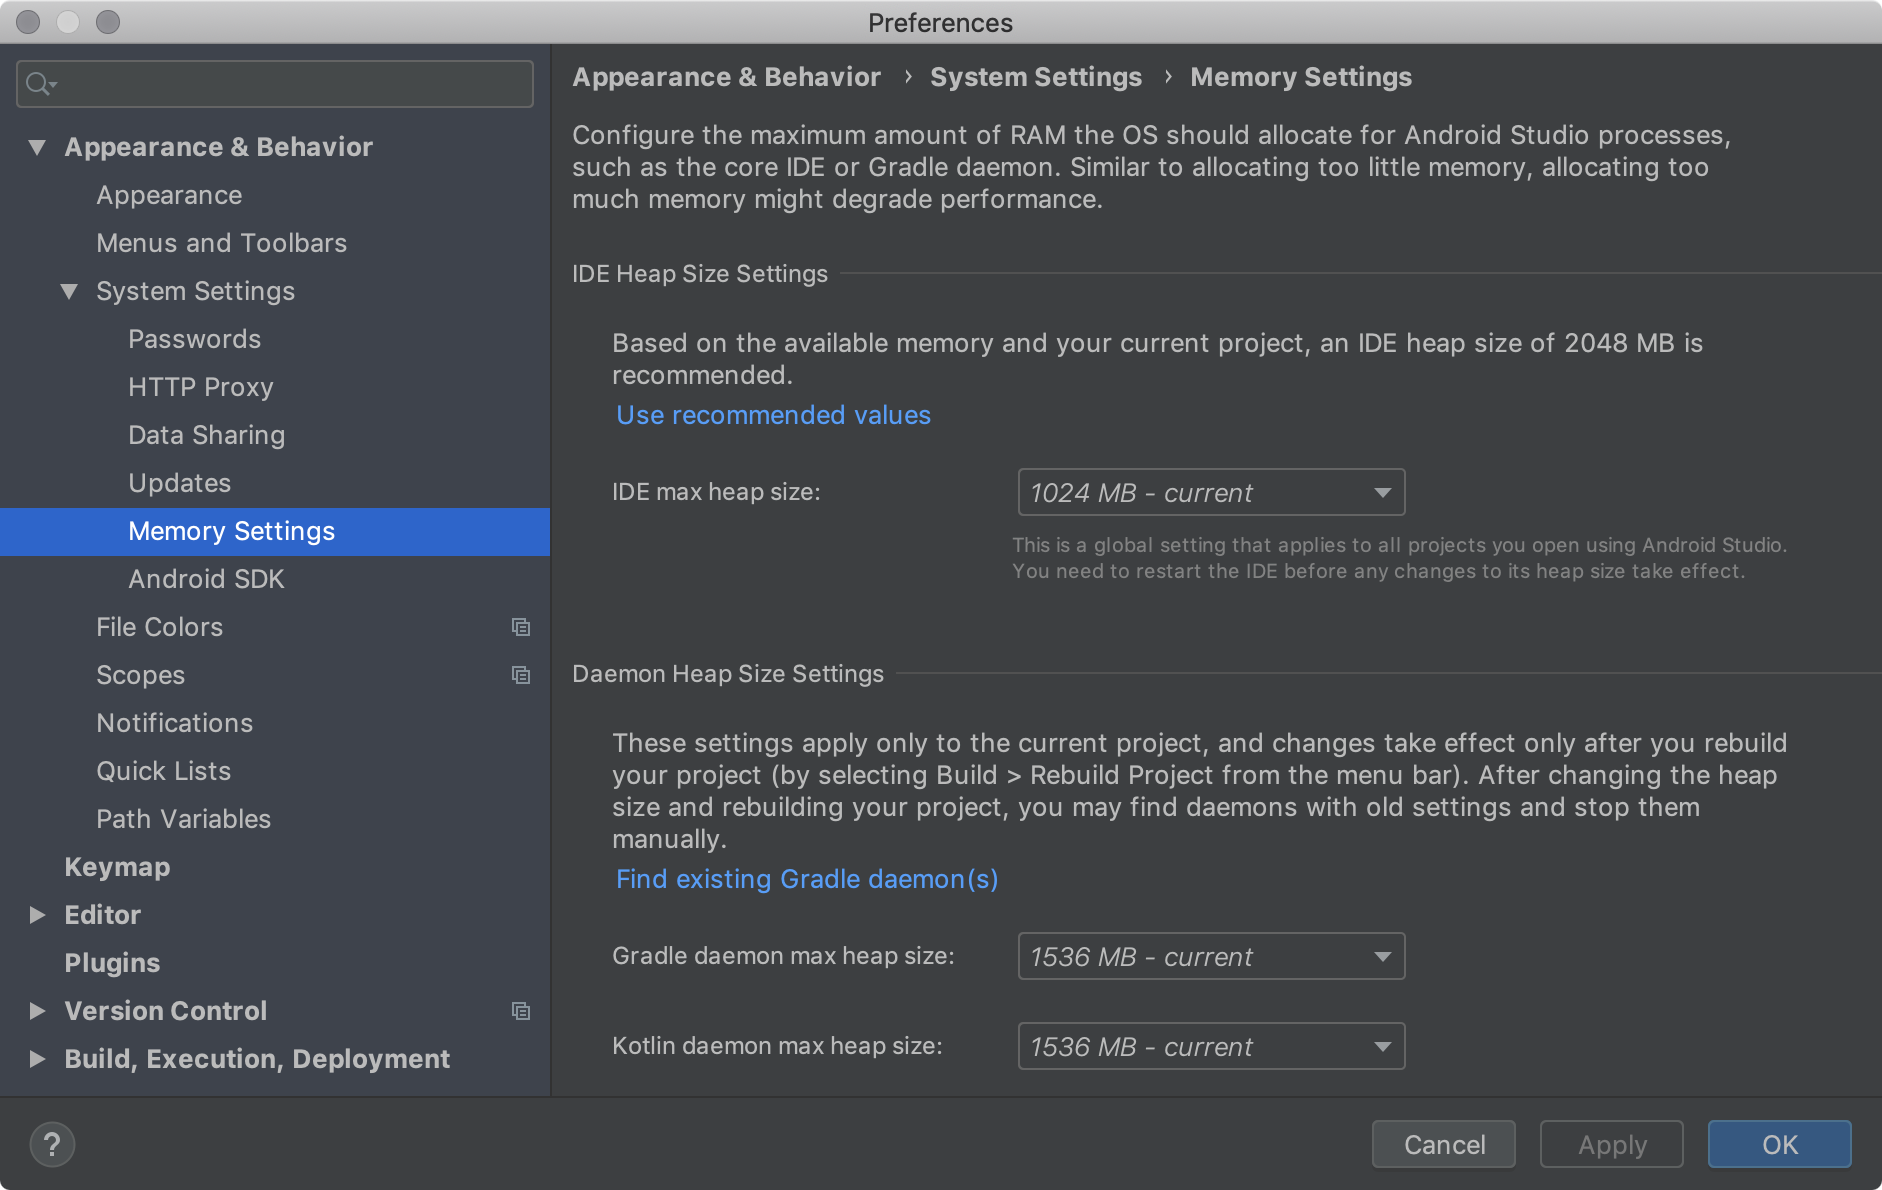 The memory settings, which let you configure maximum amount of RAM    for Android Studio processes.